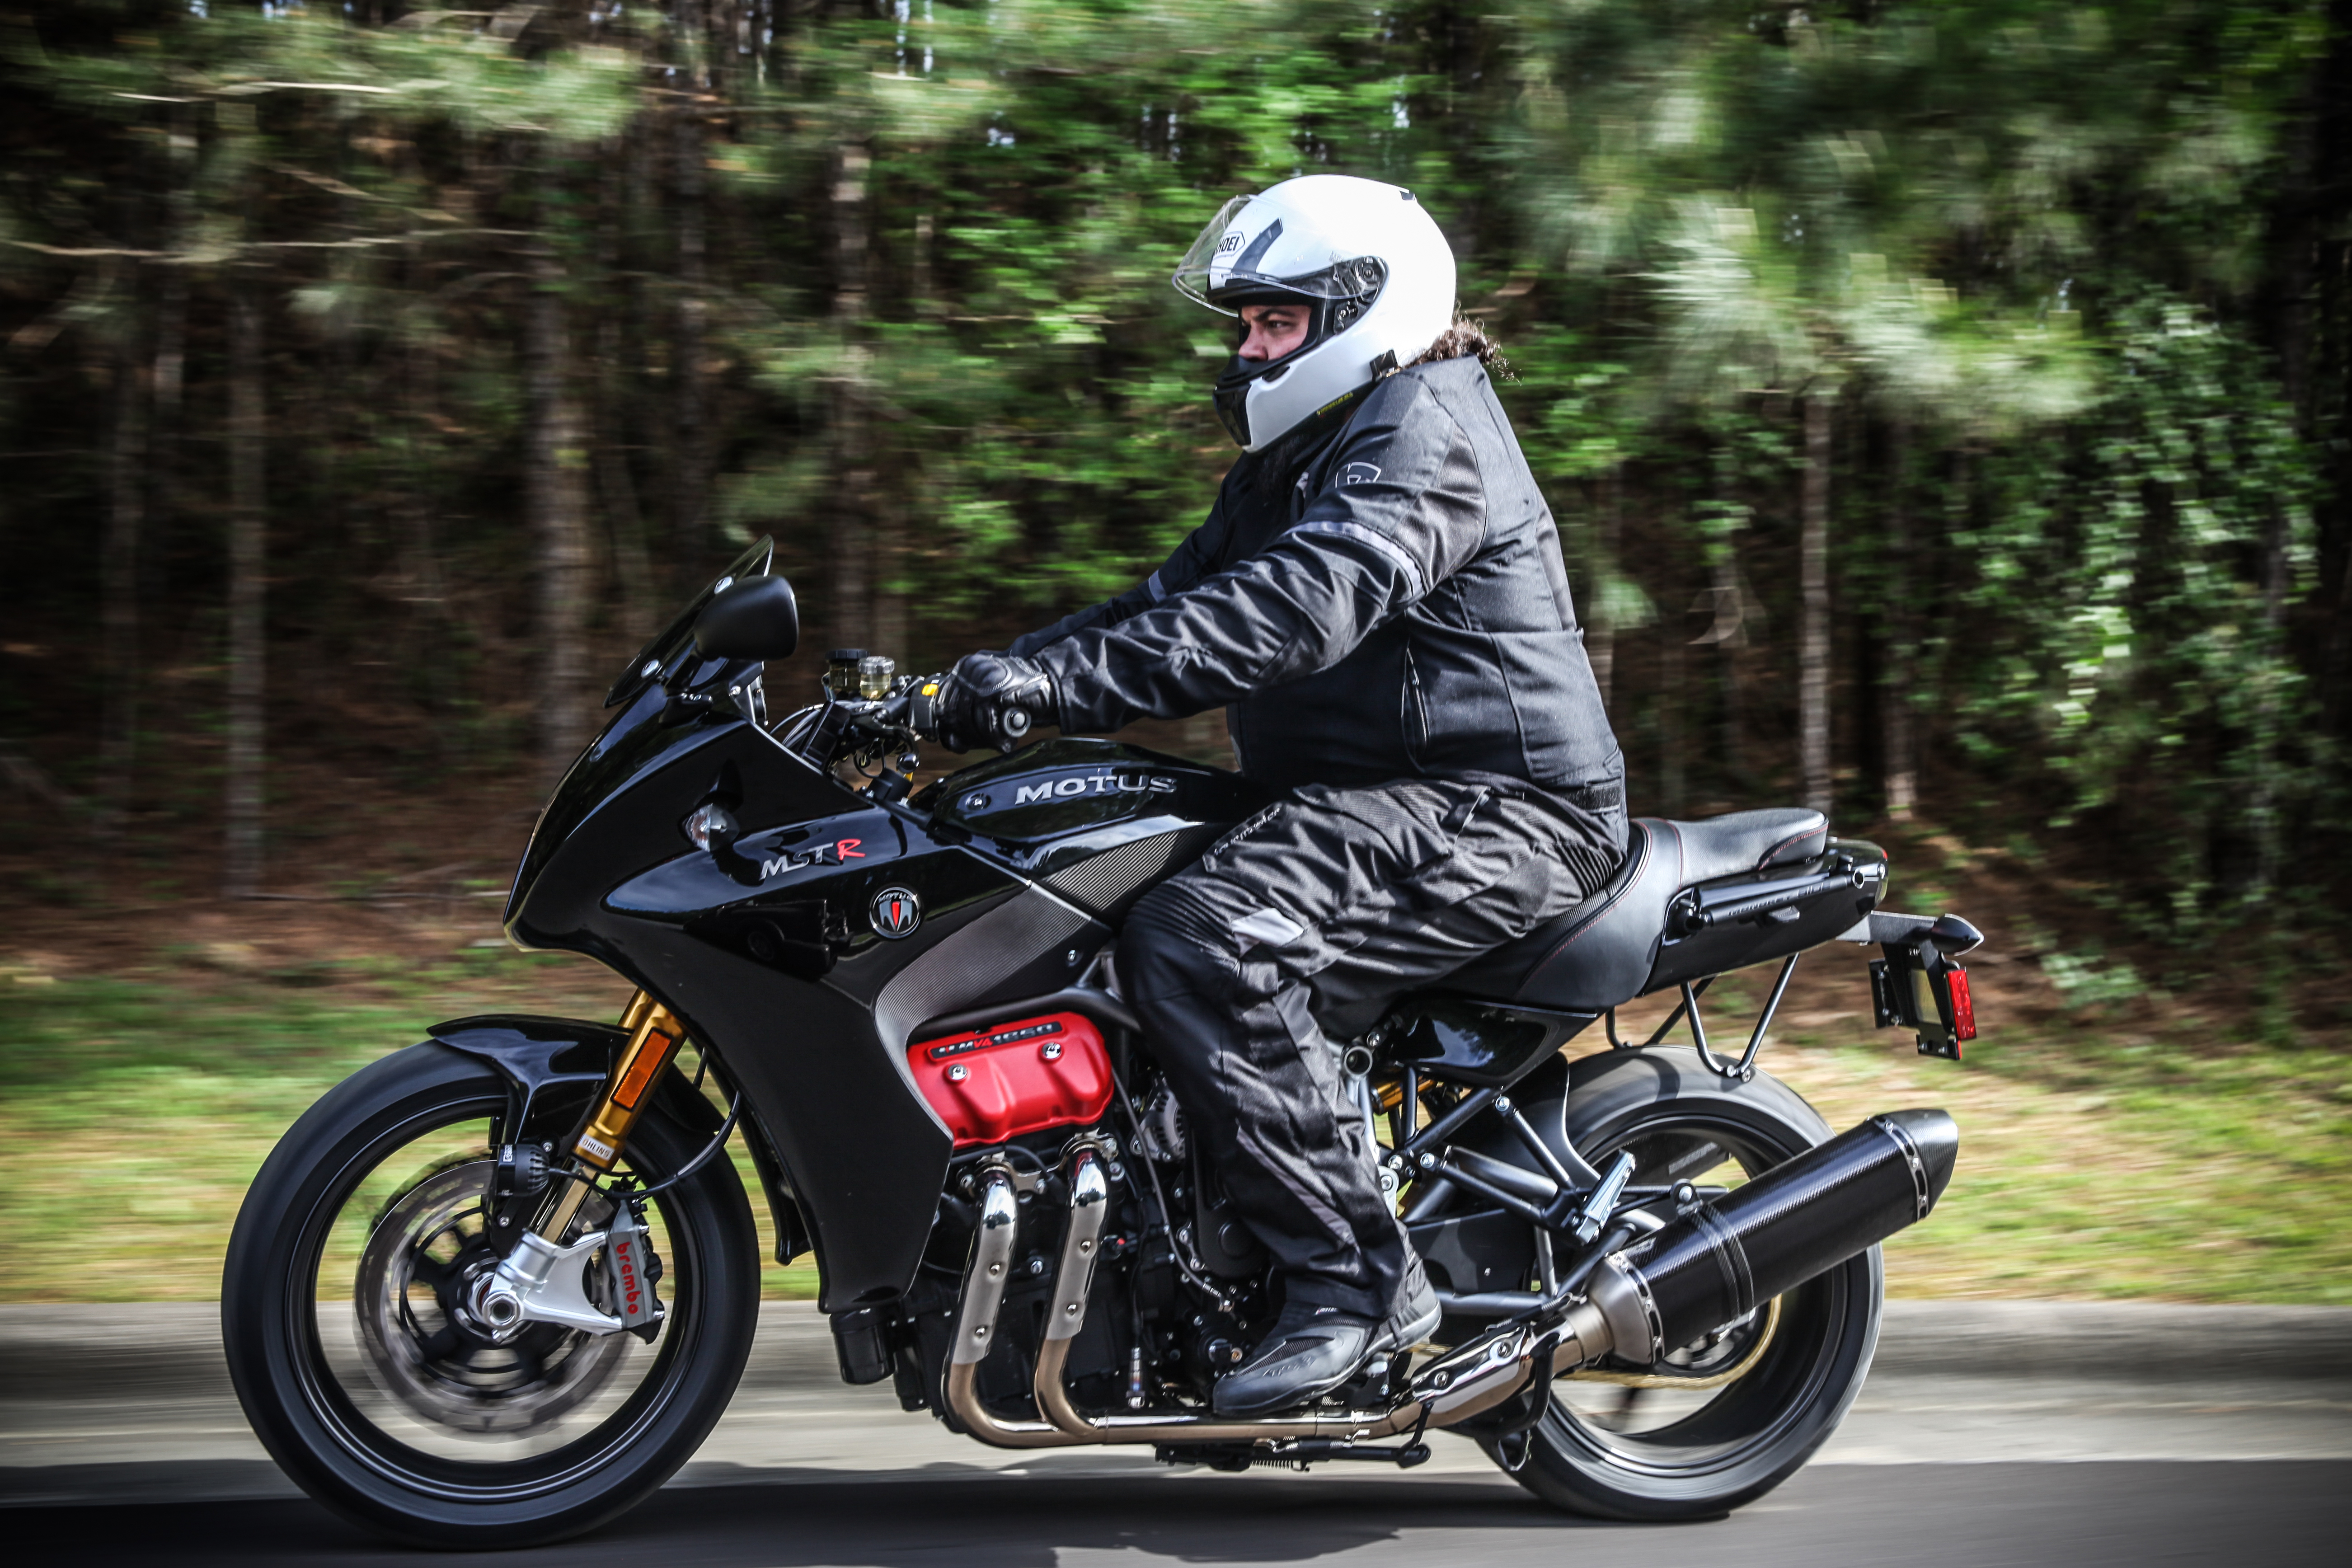 403e146a3c56 2018 Motus MST and MST-R first ride review - RevZilla